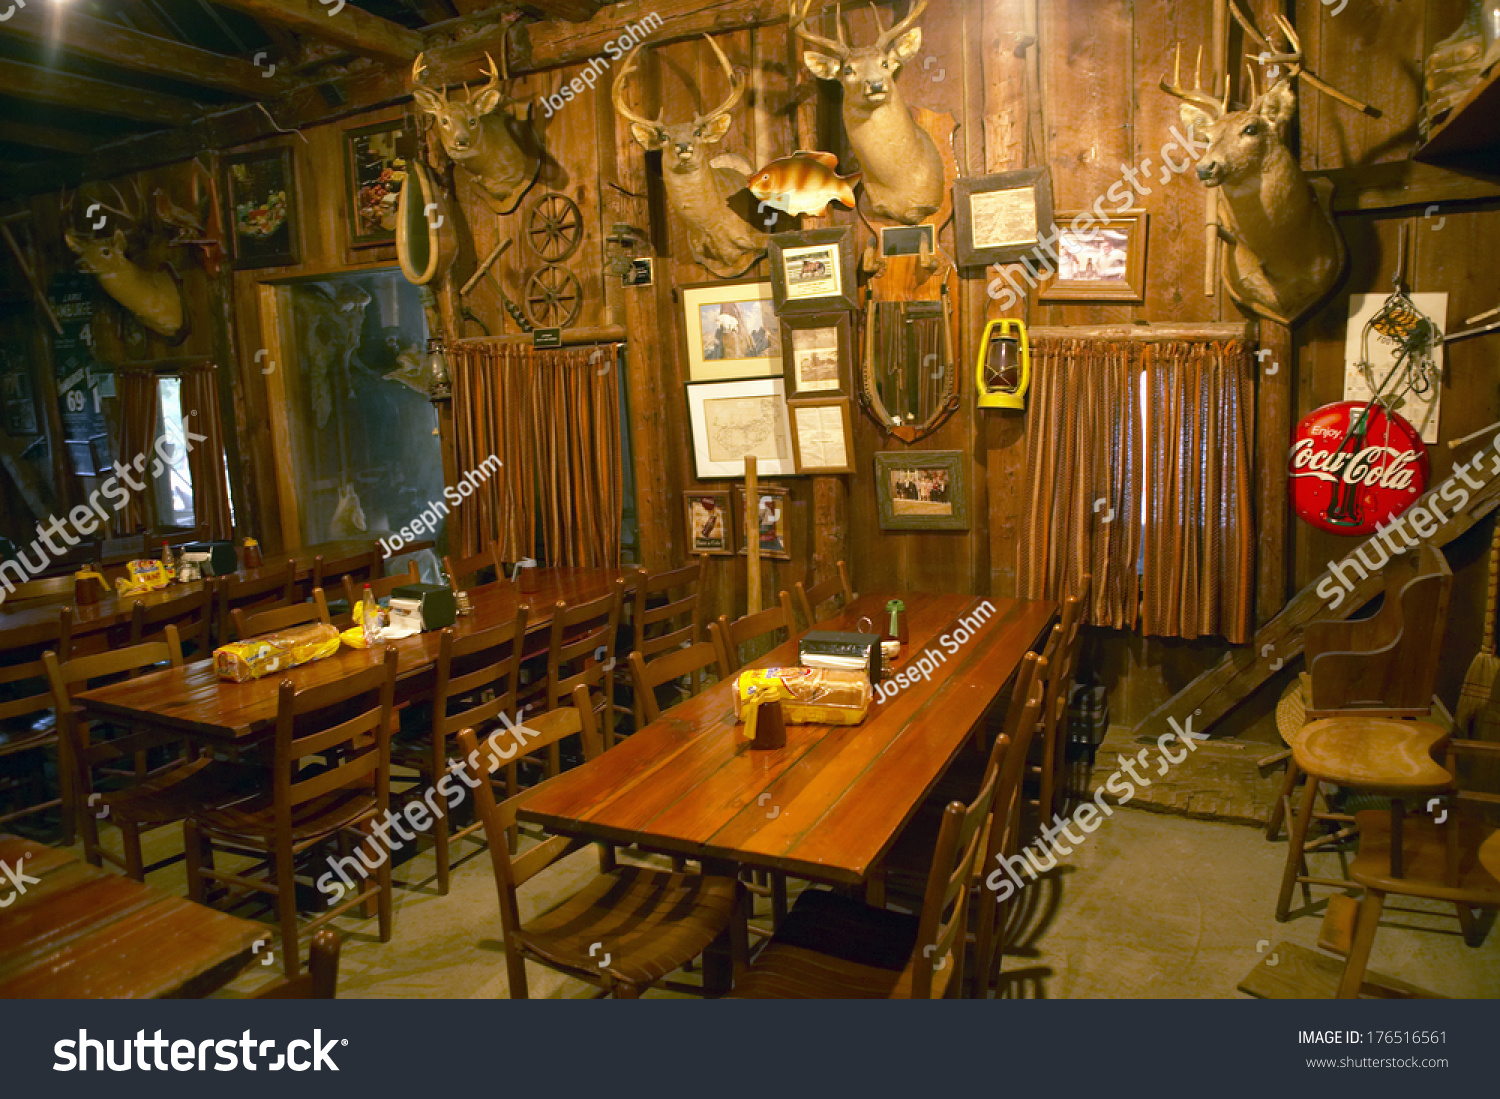 Hunting lodge interior - Interior Of Rustic Old Restaurant With Hunting Lodge